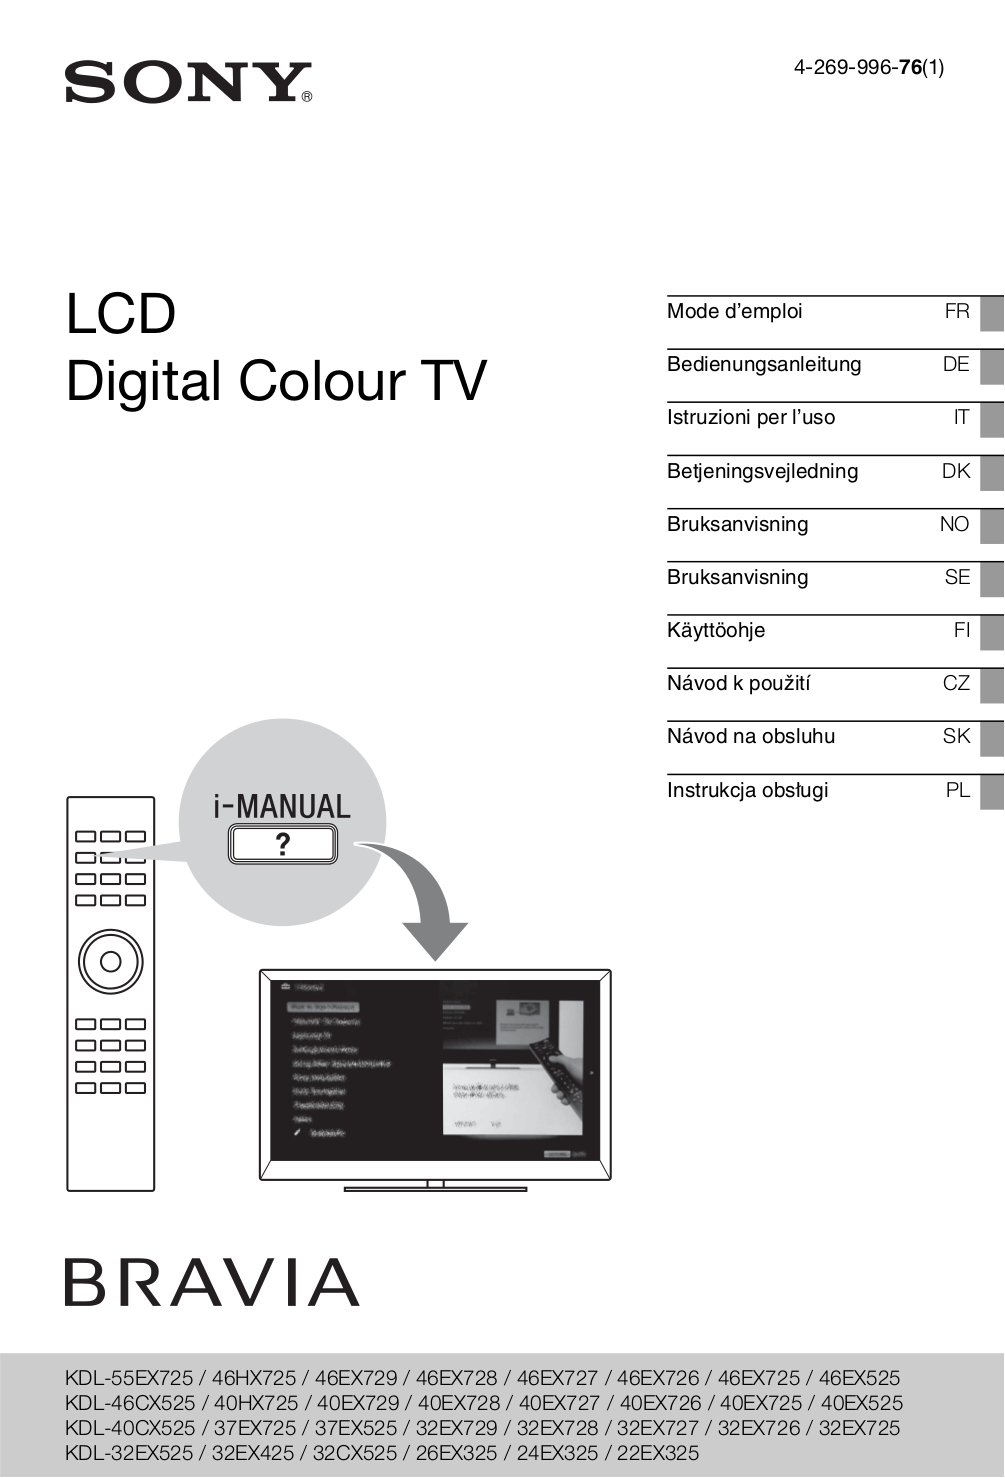 pdf for Sony LCD TV BRAVIA KDL-46EX729 manual